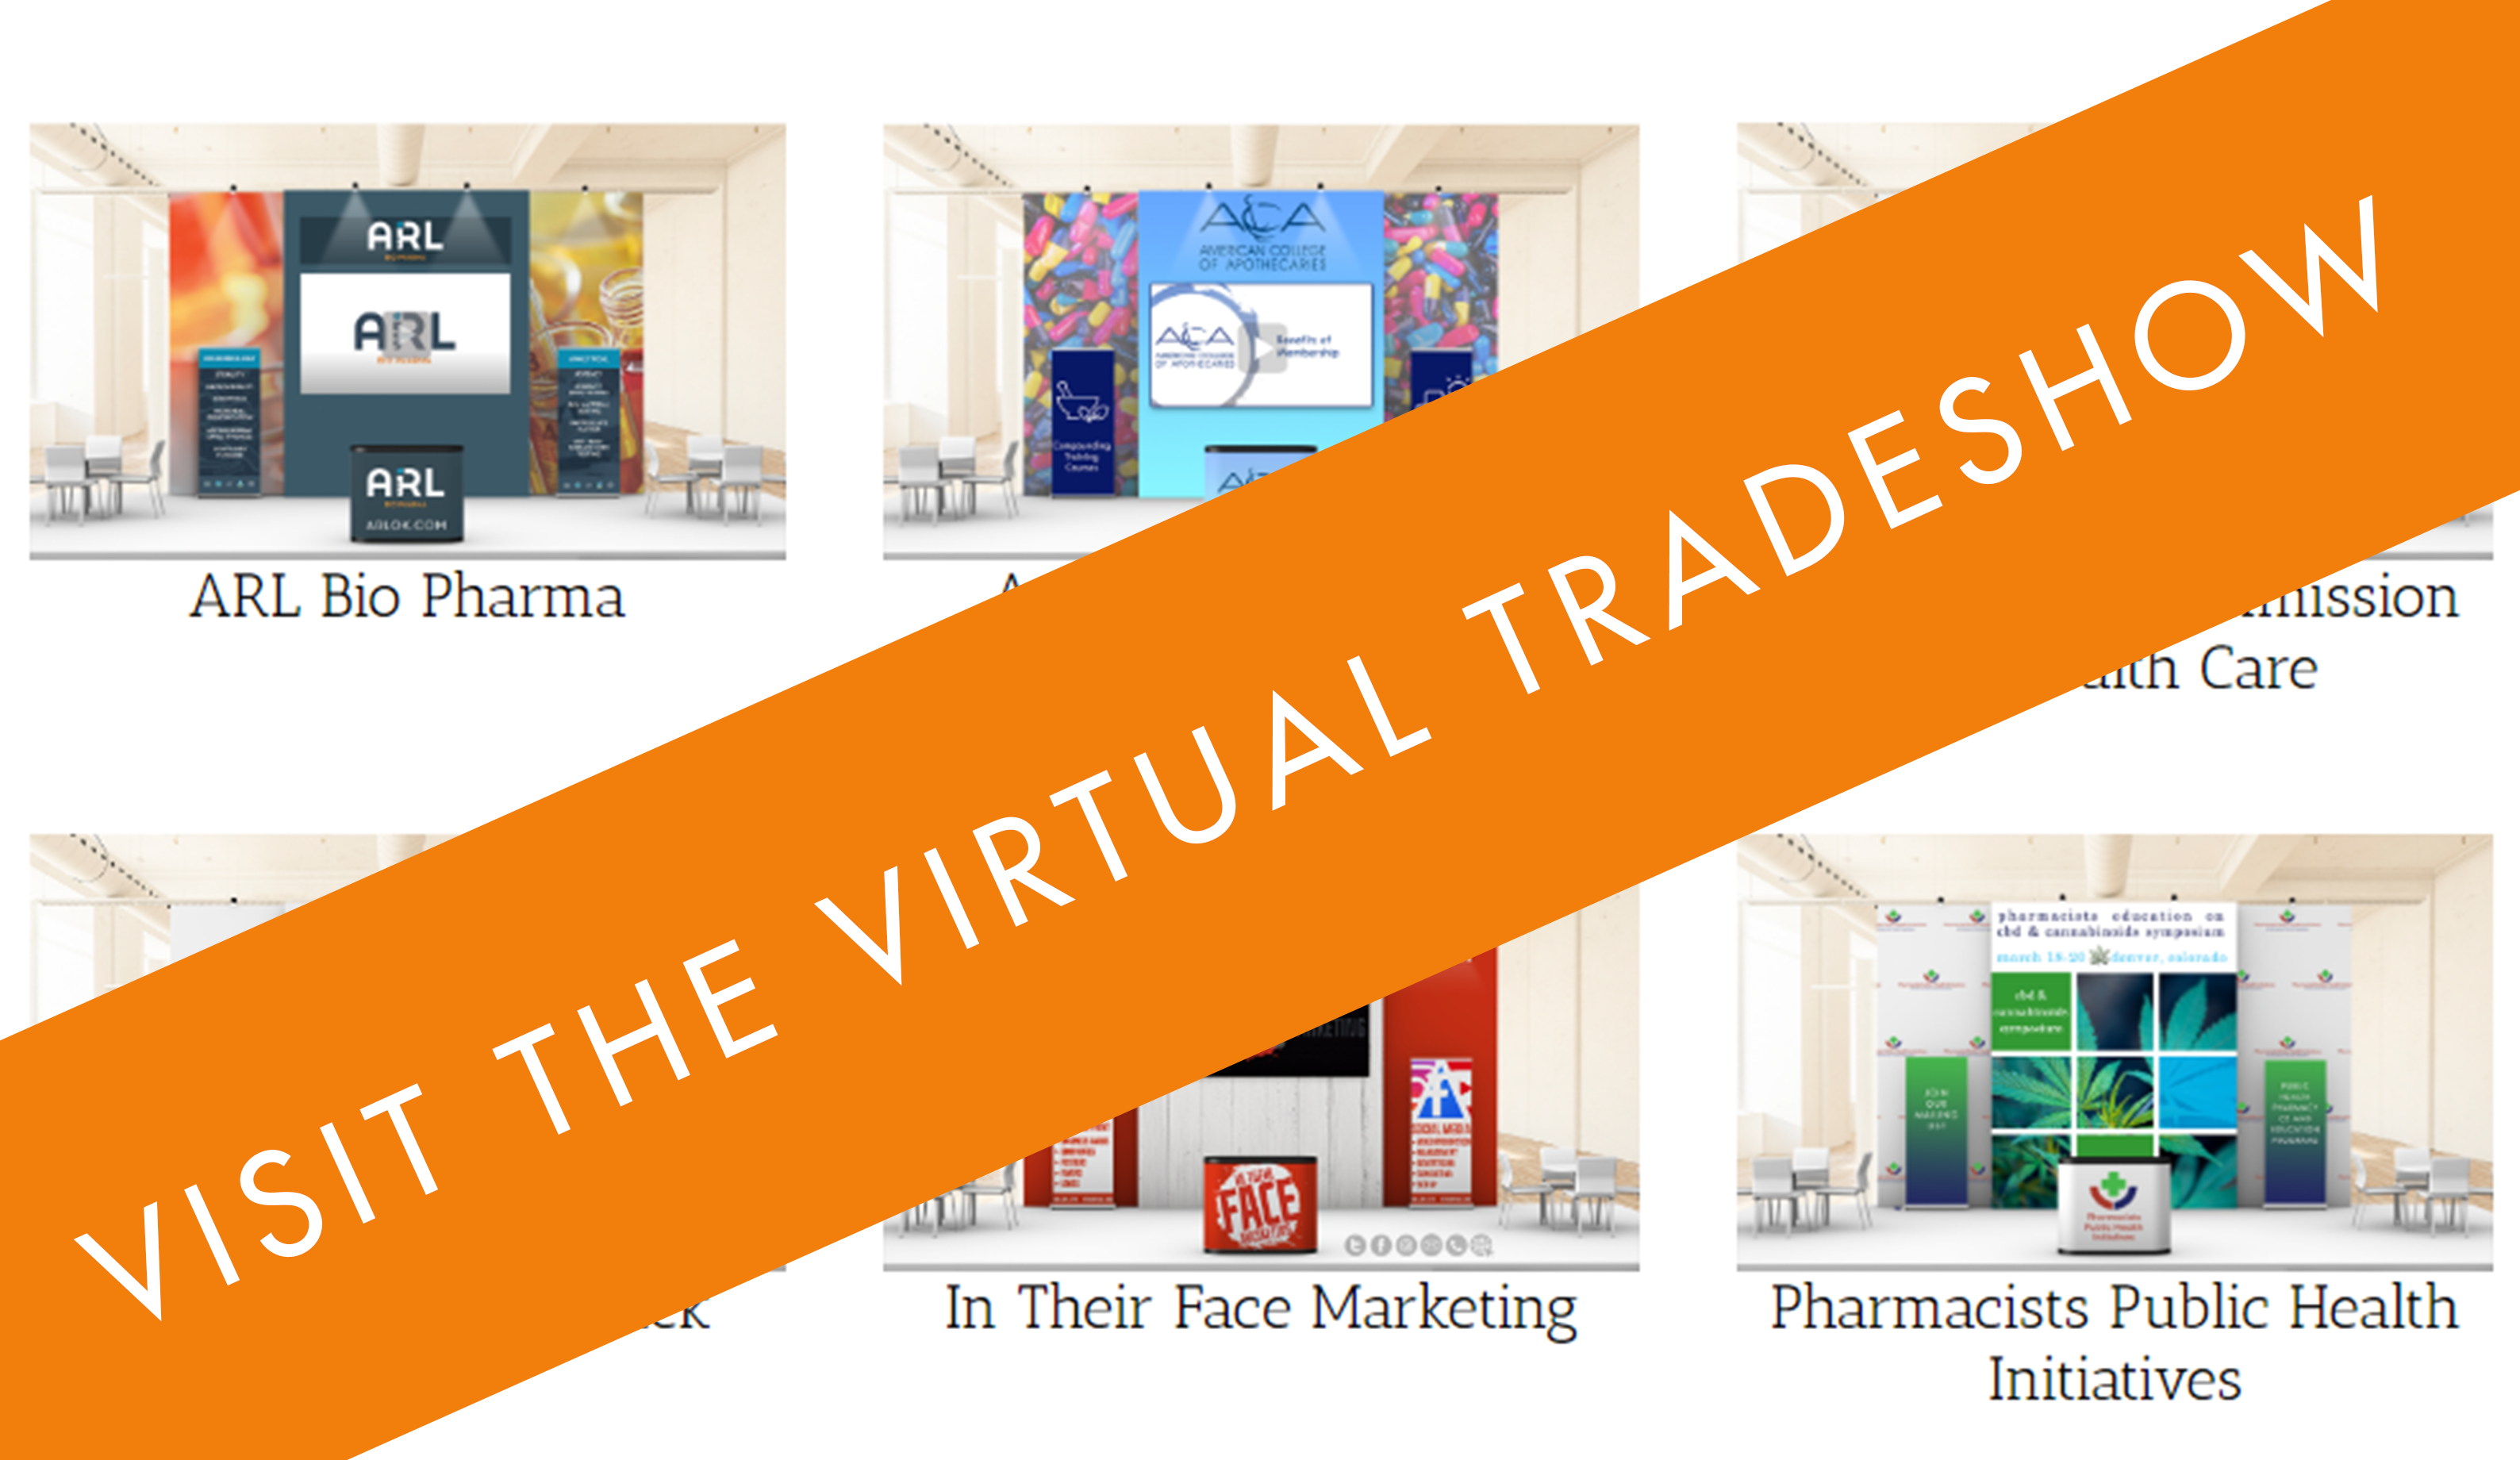 Visit the Virtual Tradeshow